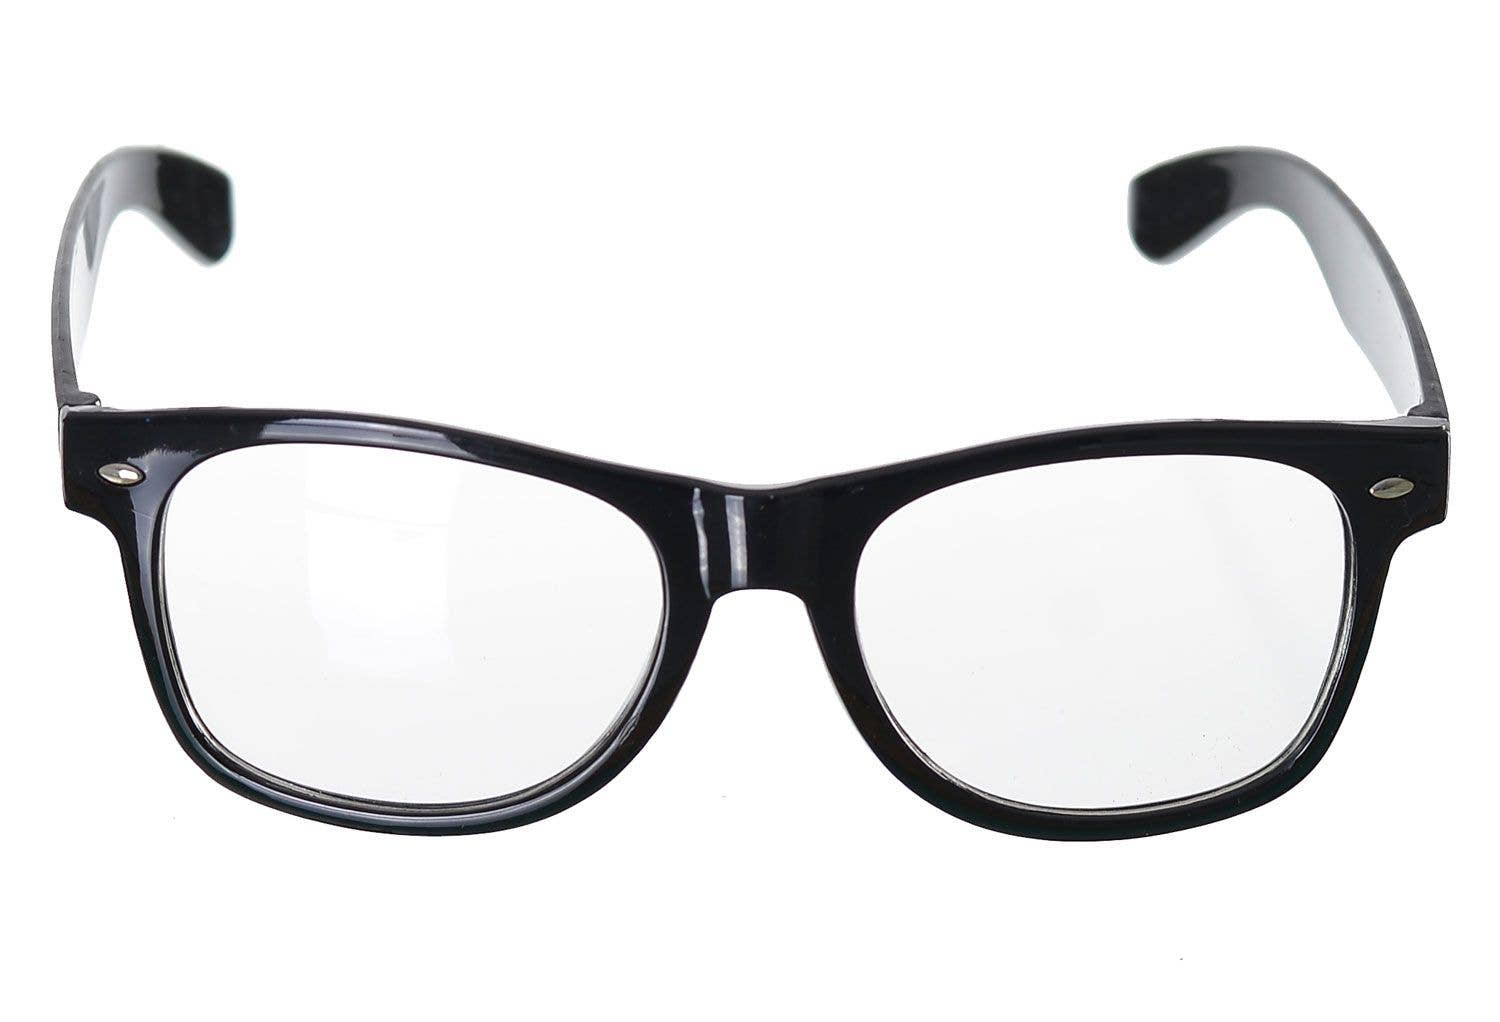 86fb8c2a492 More Views of School Nerd Black Frame Glasses